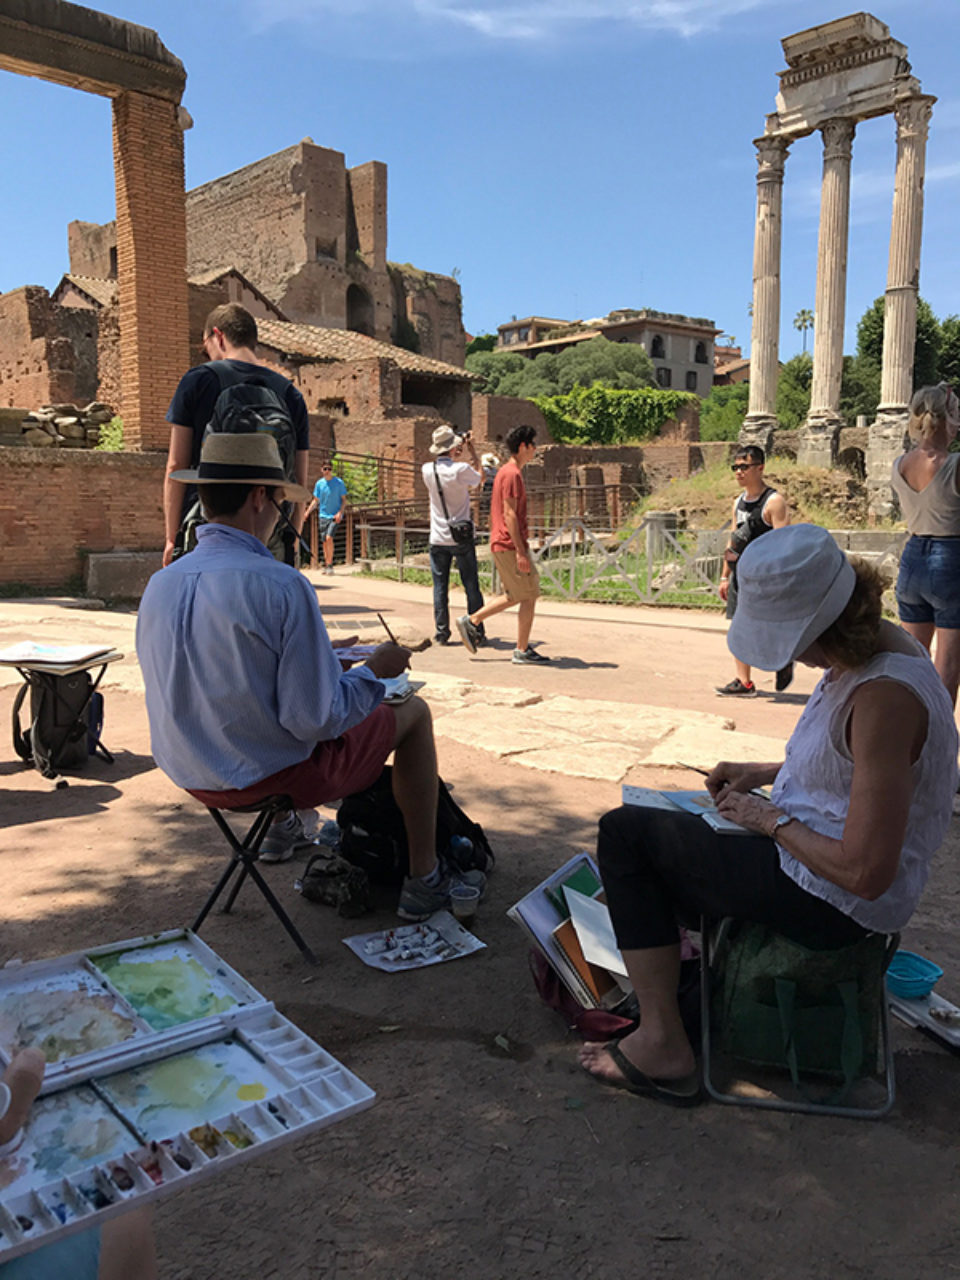 Tour participants sketch on location in the Roman Forum